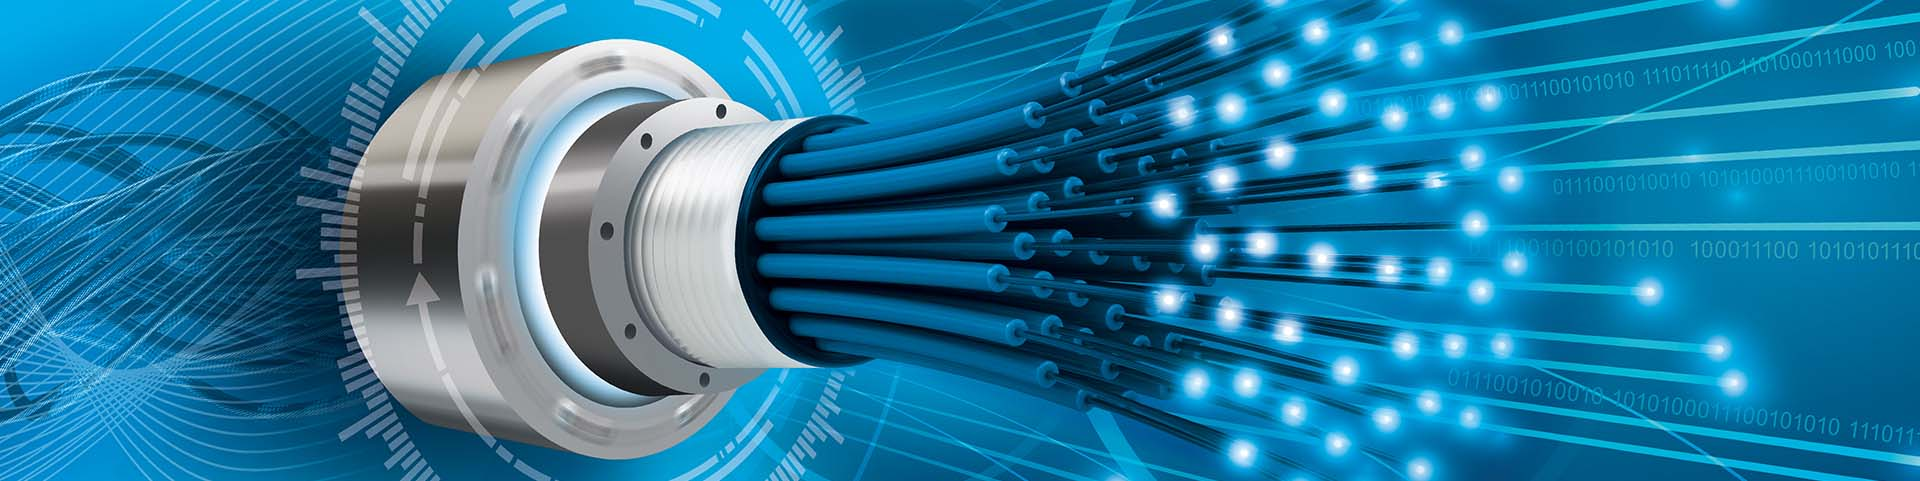 Fiber Optic Rotary Joints for high speed date transmission